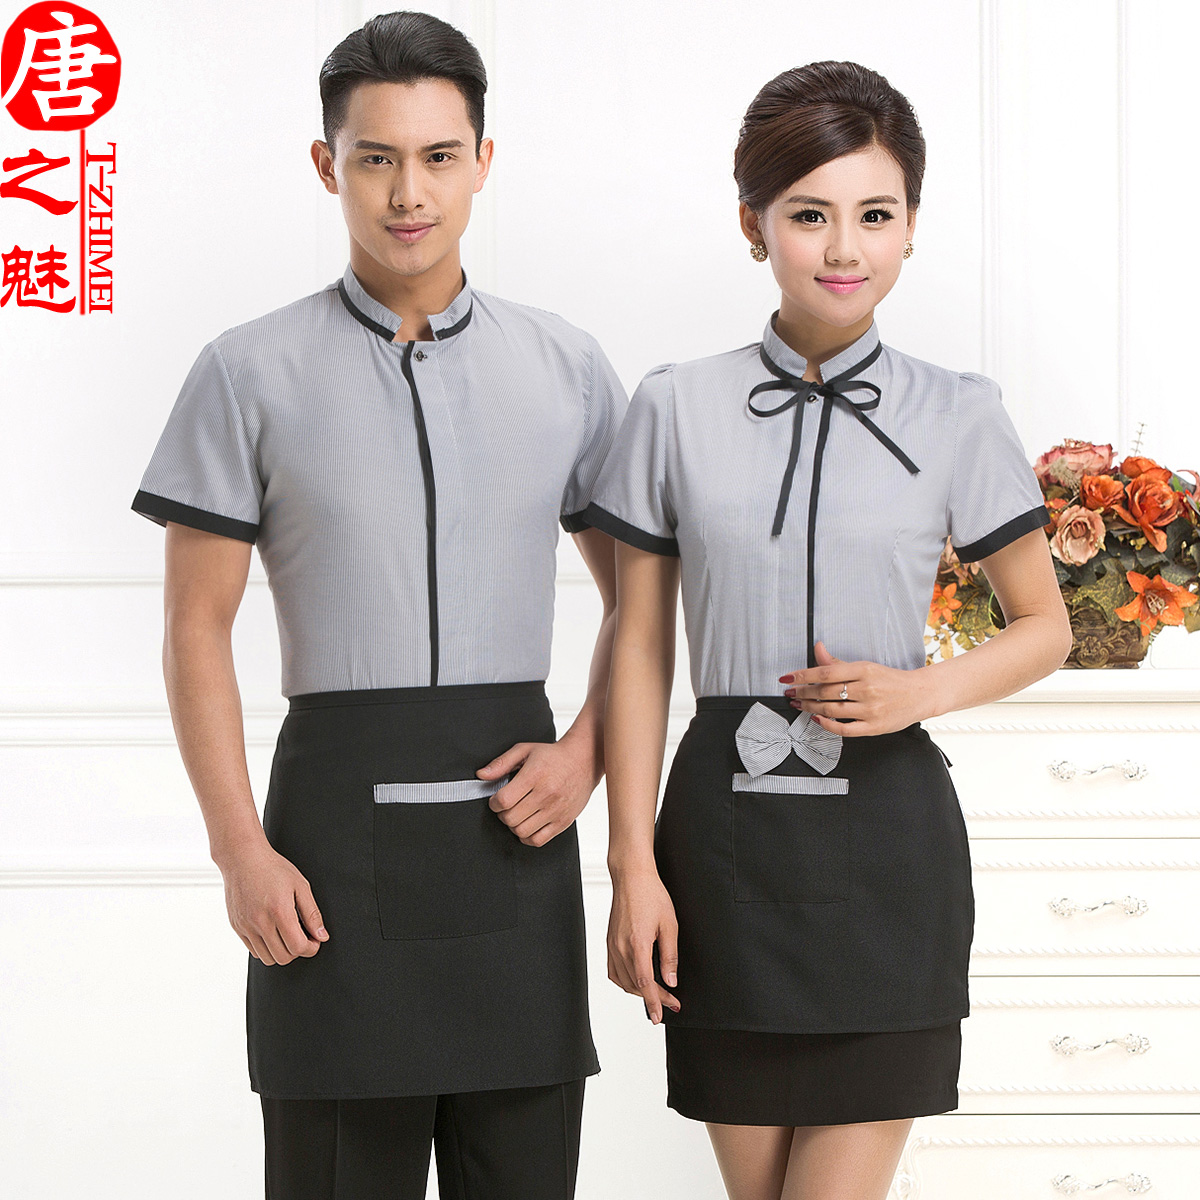 Hotel uniforms summer clothes for men and women dining restaurant waiter uniforms hotel cafe hotel restaurant sleeved